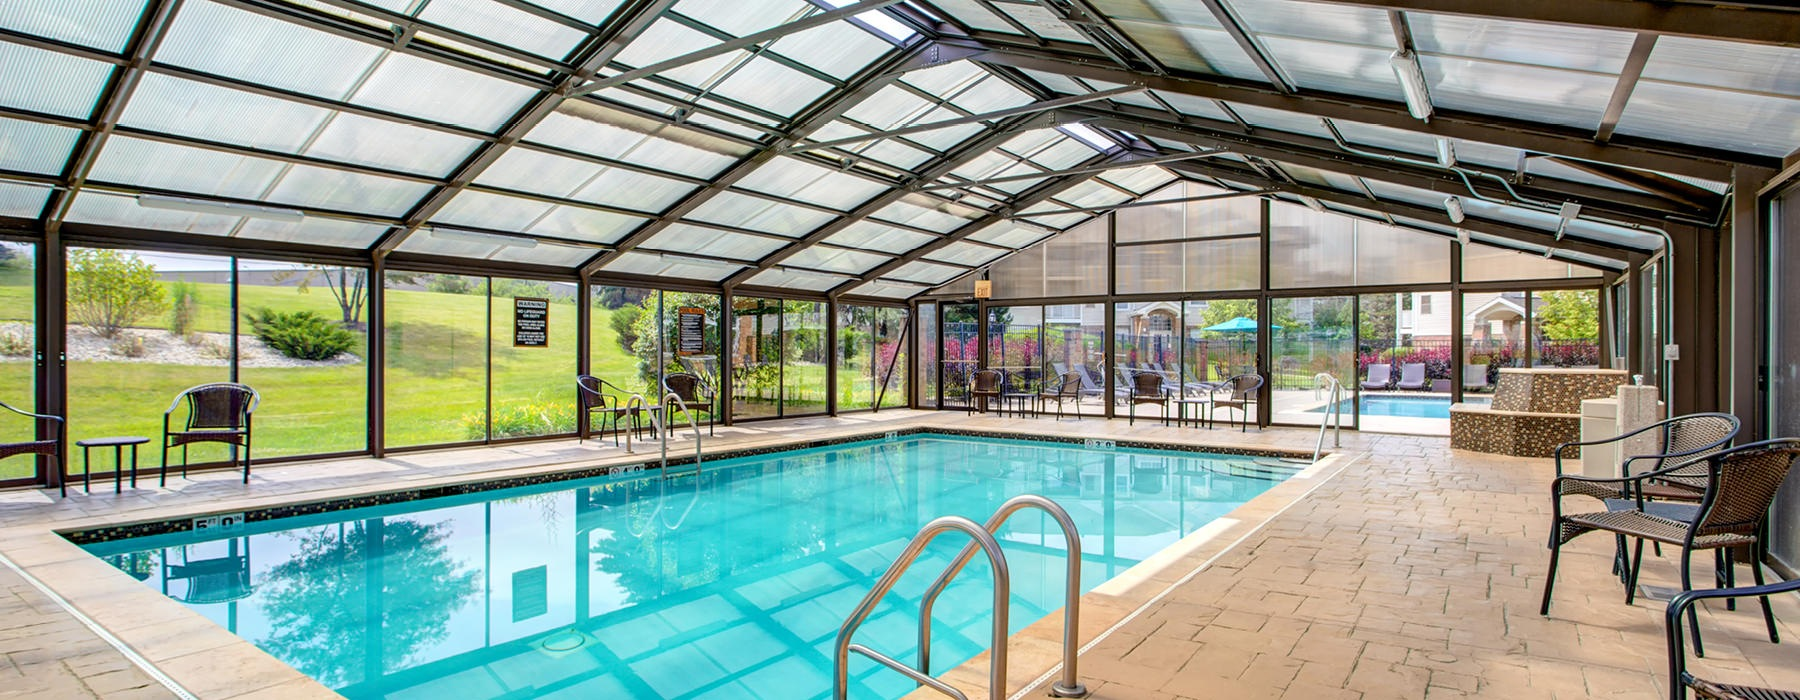 Indoor pool with translucent atrium.